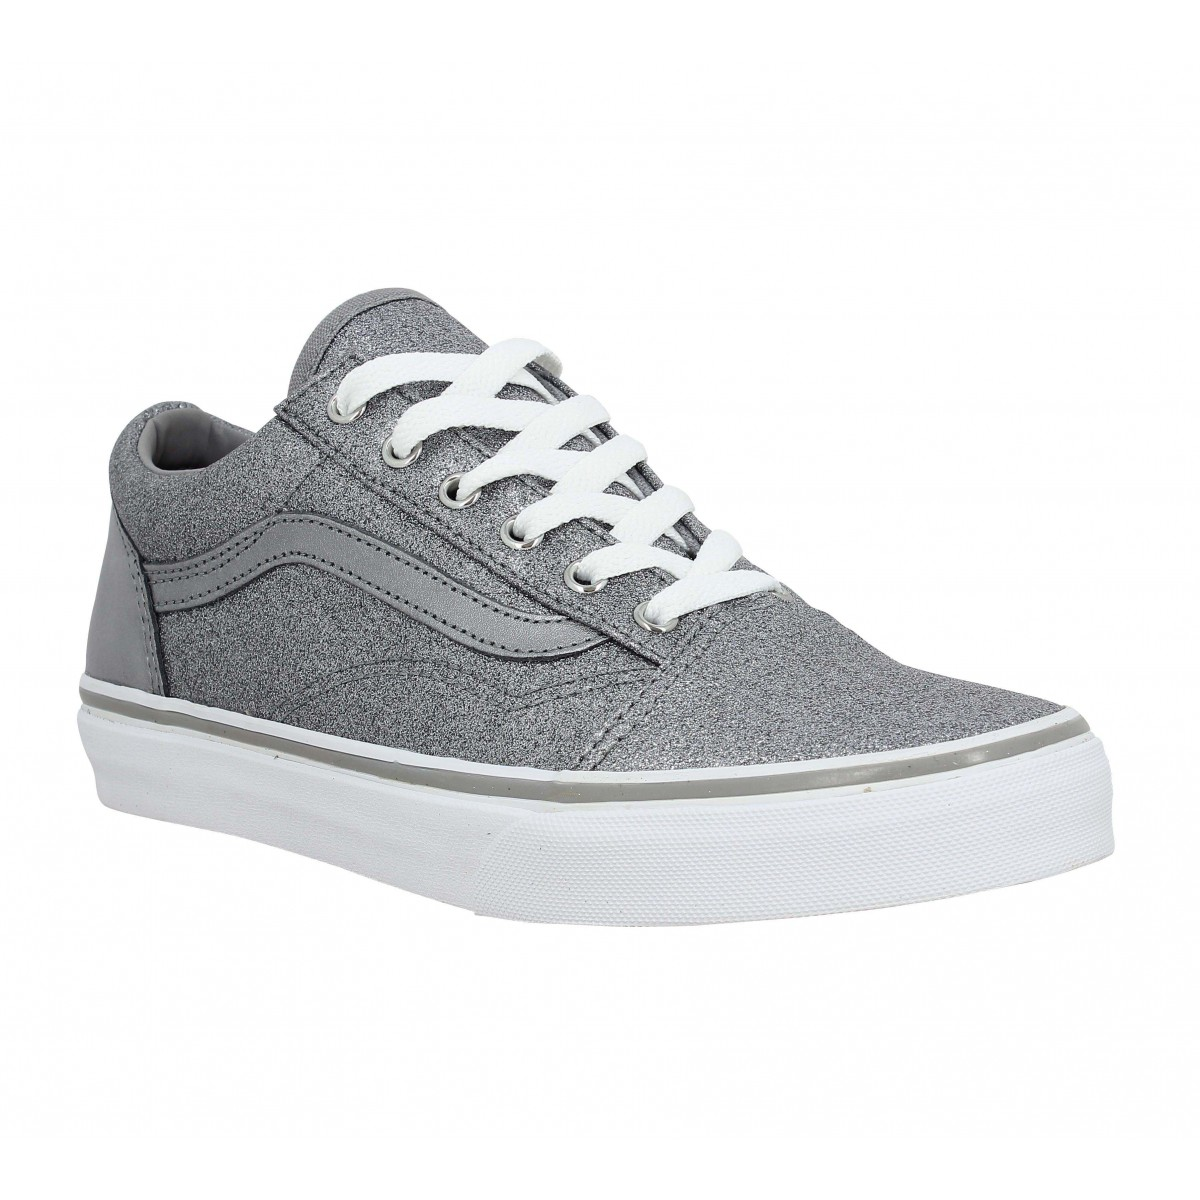 Baskets VANS Old Skool toile Enfant Metal